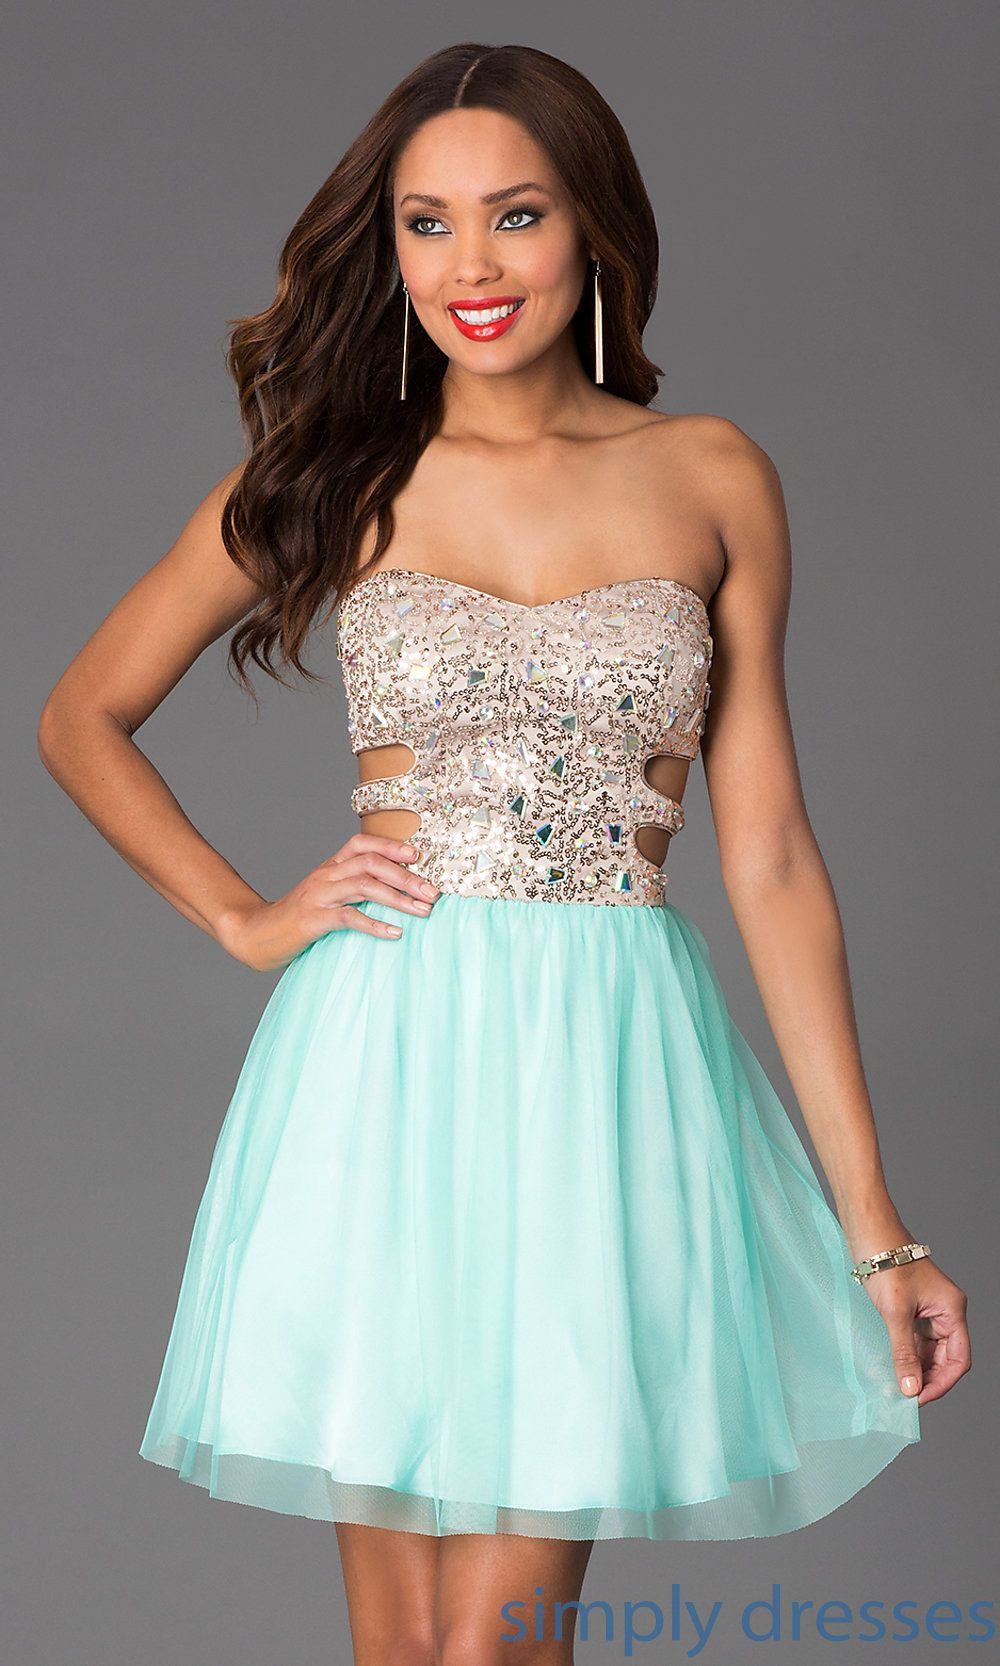 Dress short strapless sweetheart dress with side cut outs simply